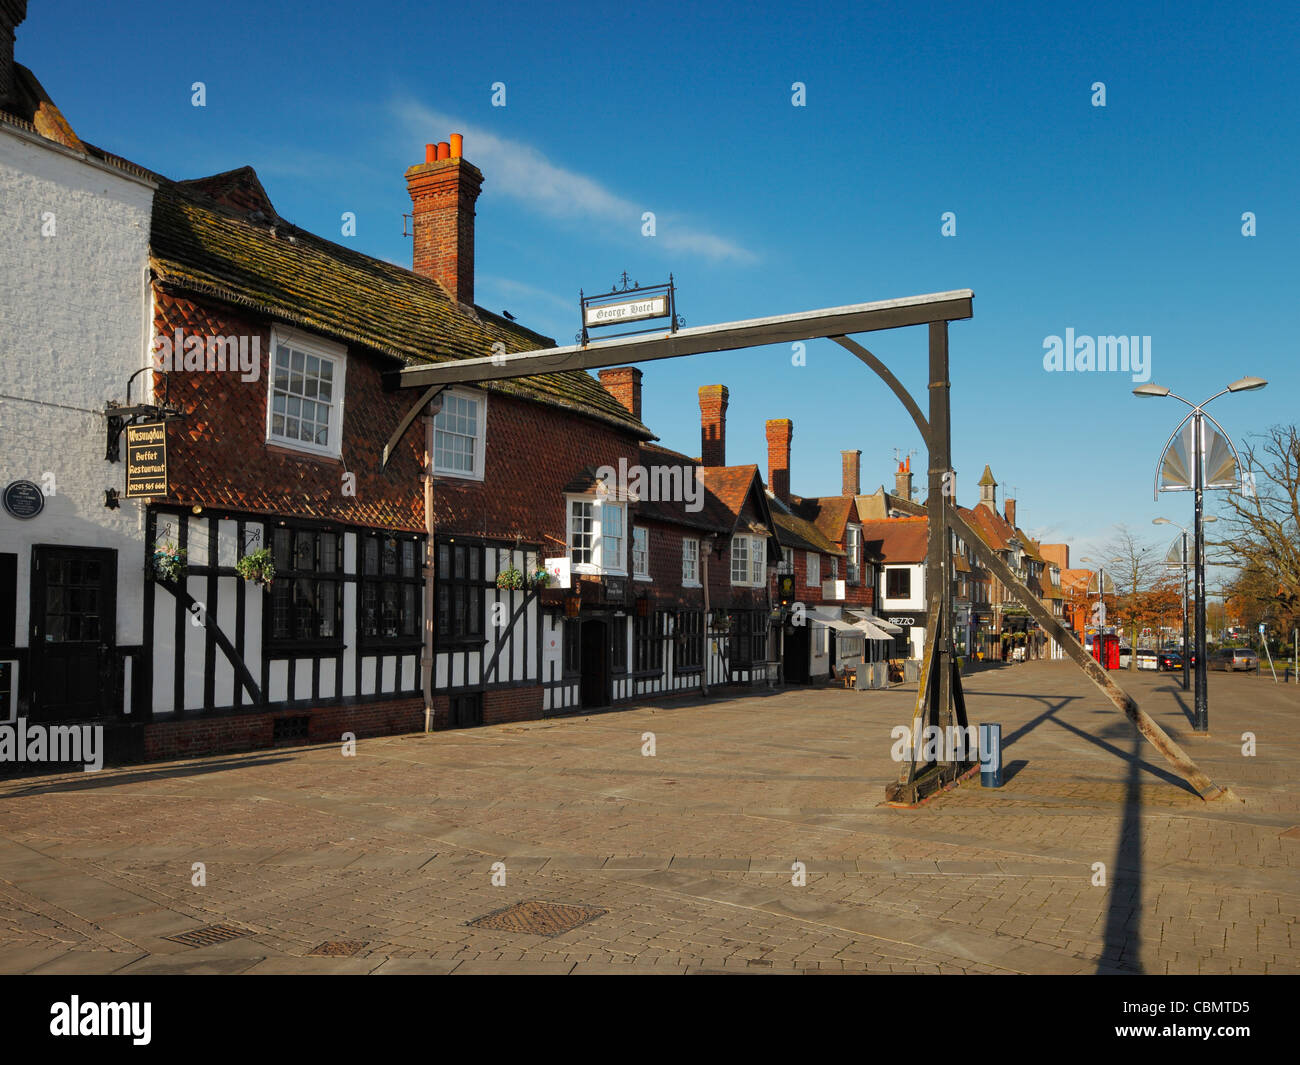 Crawley High Street. - Stock Image